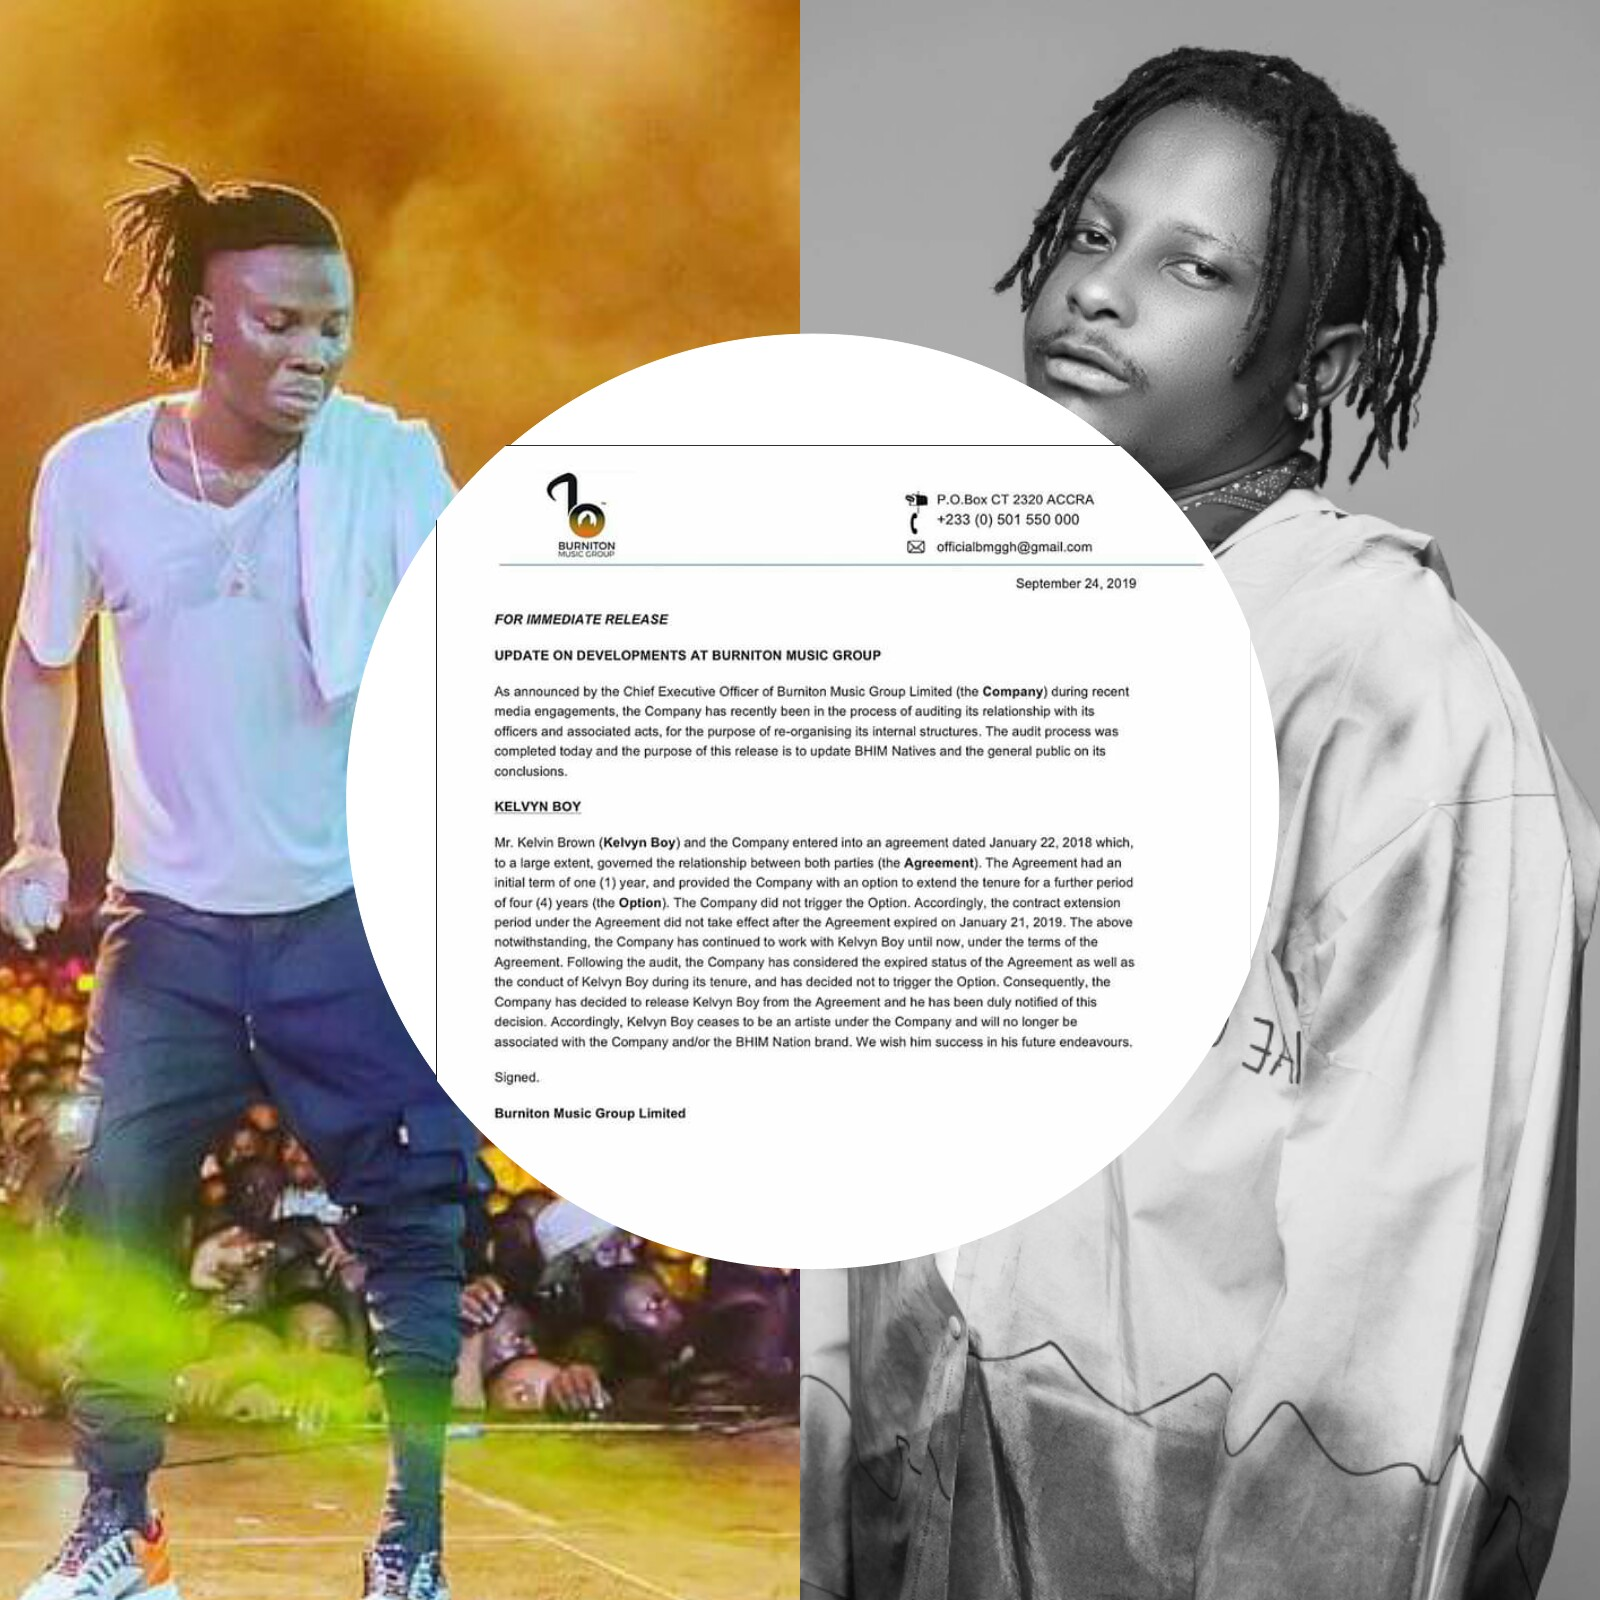 Burniton Music Group ceases to work with Kelvyn Bwoy